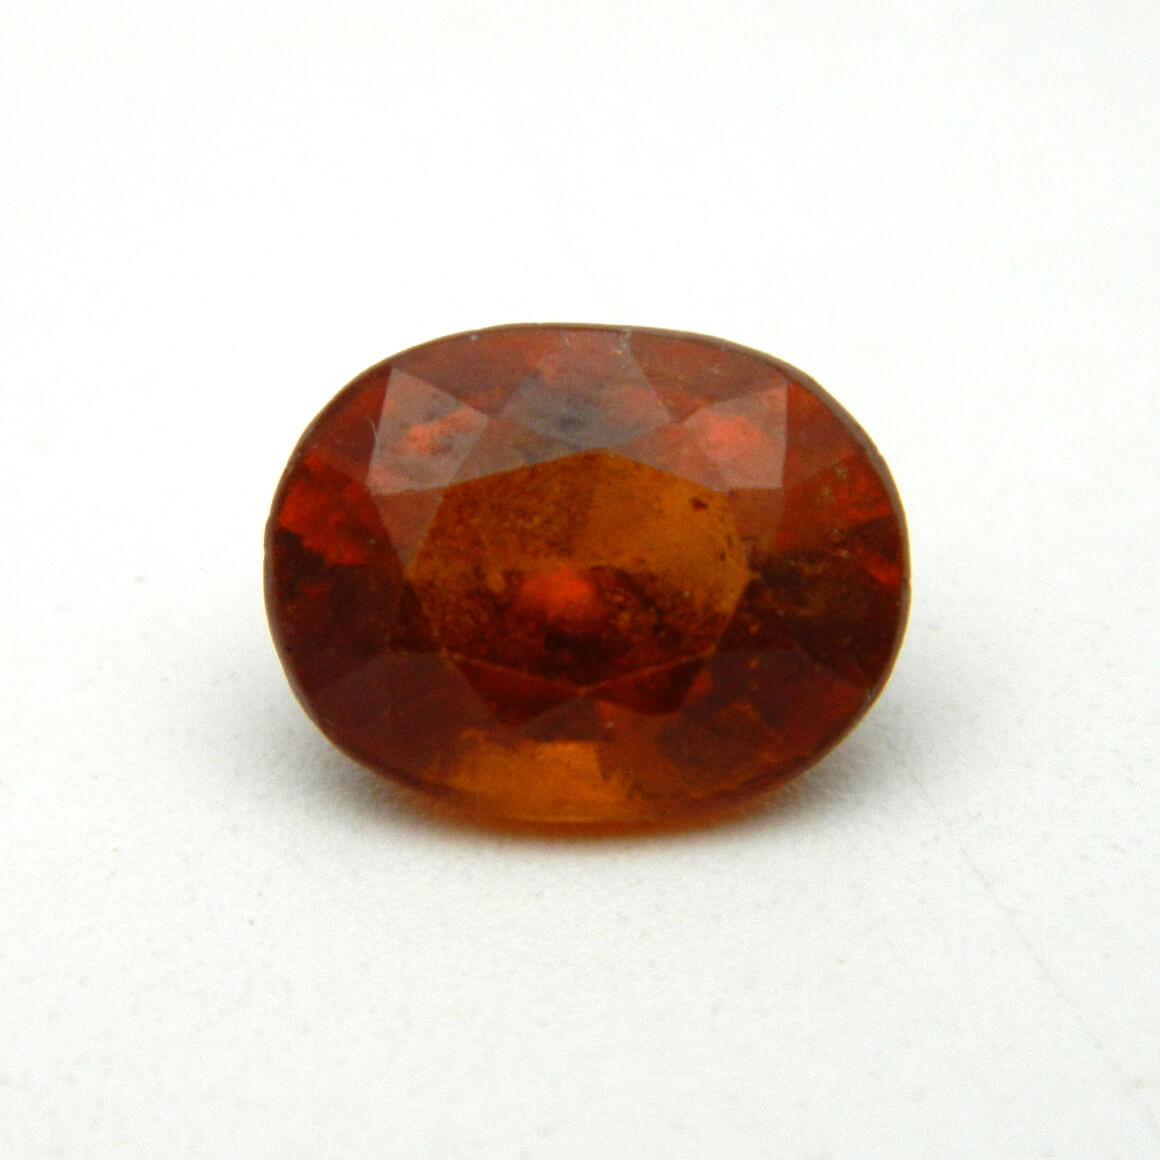 5.36 Carat/ 5.95 Ratti Natural Ceylon Hessonite Garnet (Gomed) Gemstone